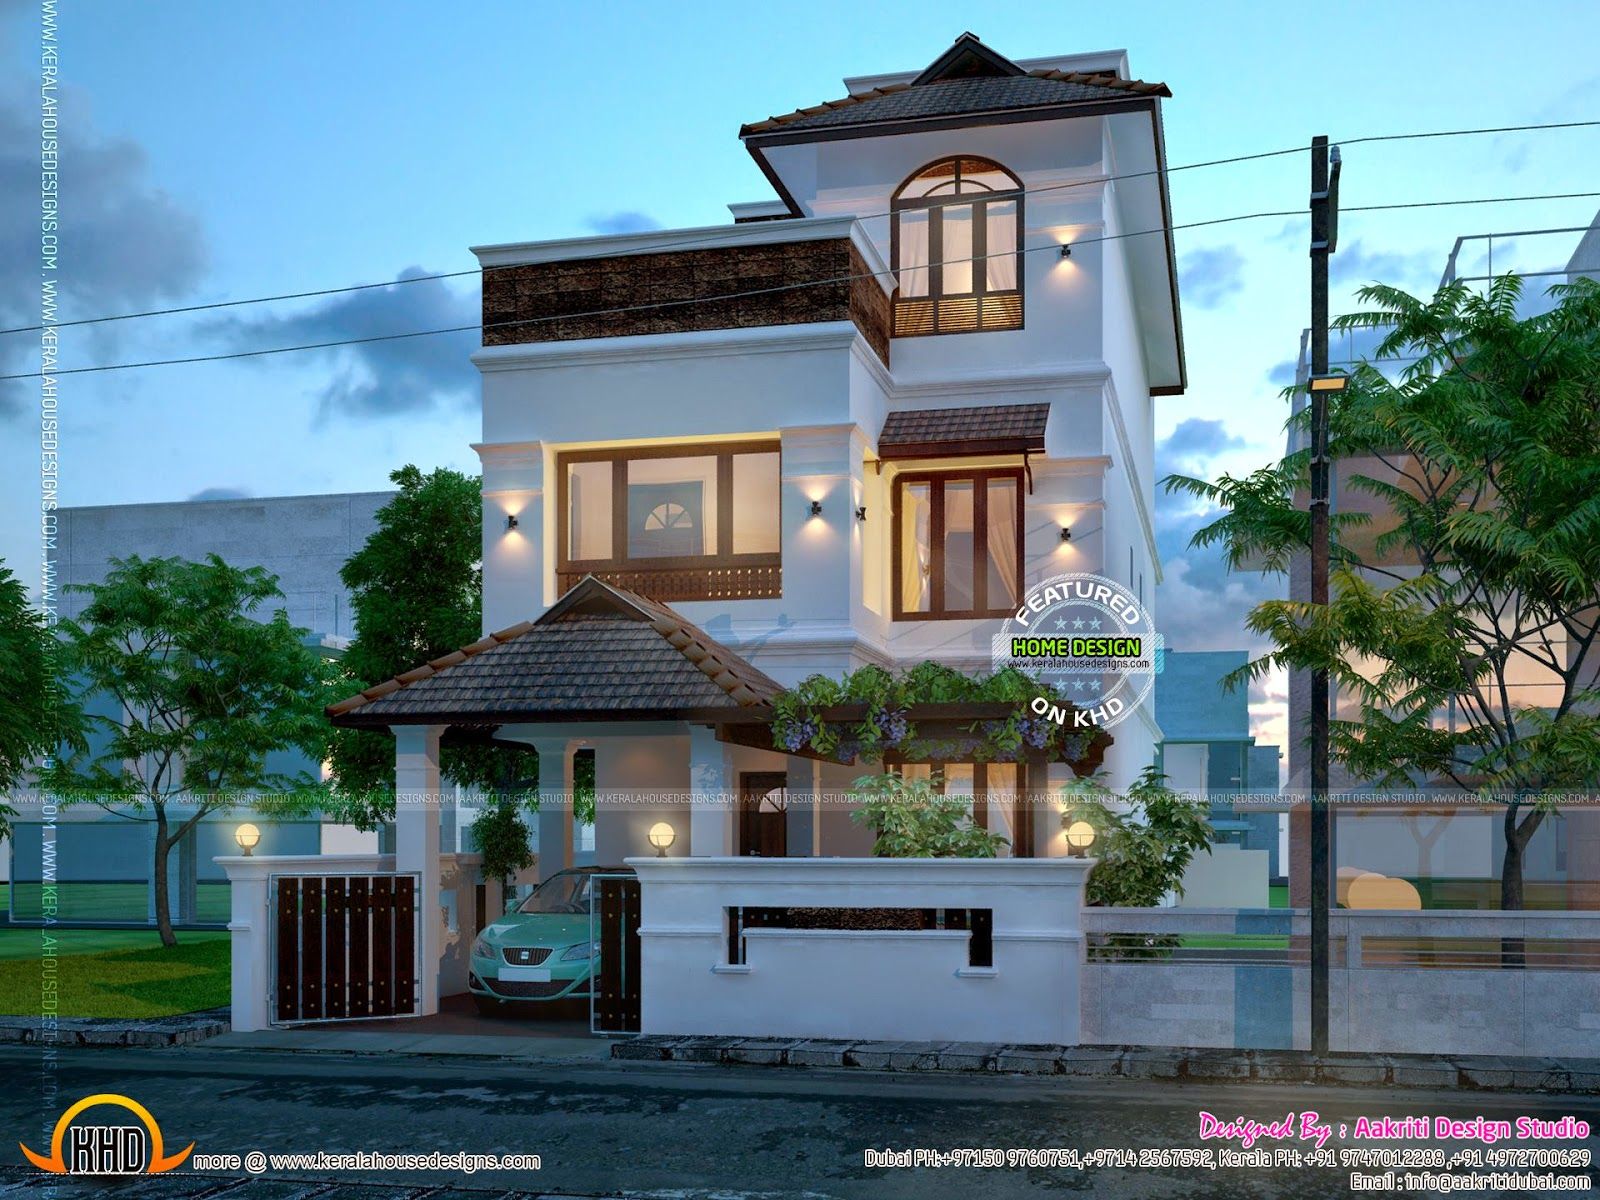 New house design kerala home design and floor plans for New house plan design